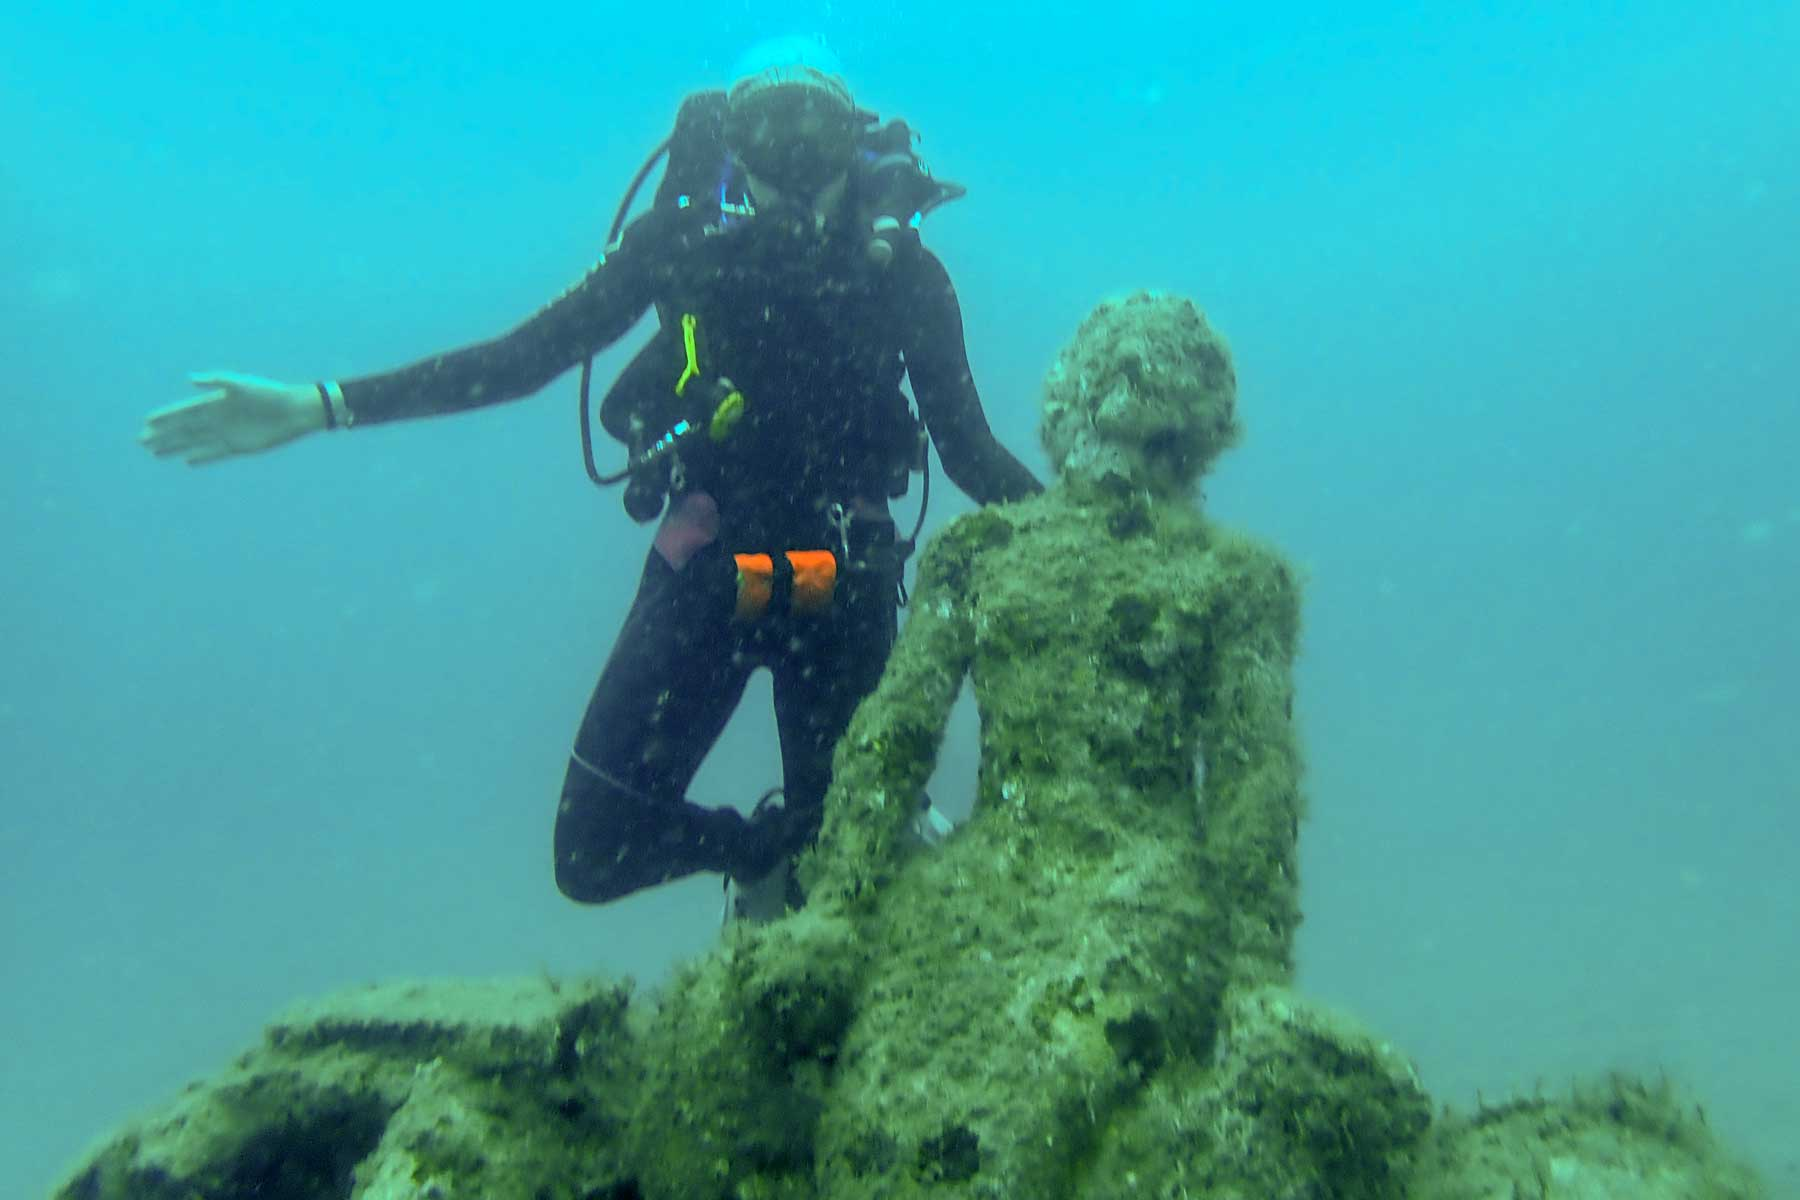 Scuba diver underwater with sculpture of mermaid in Florida